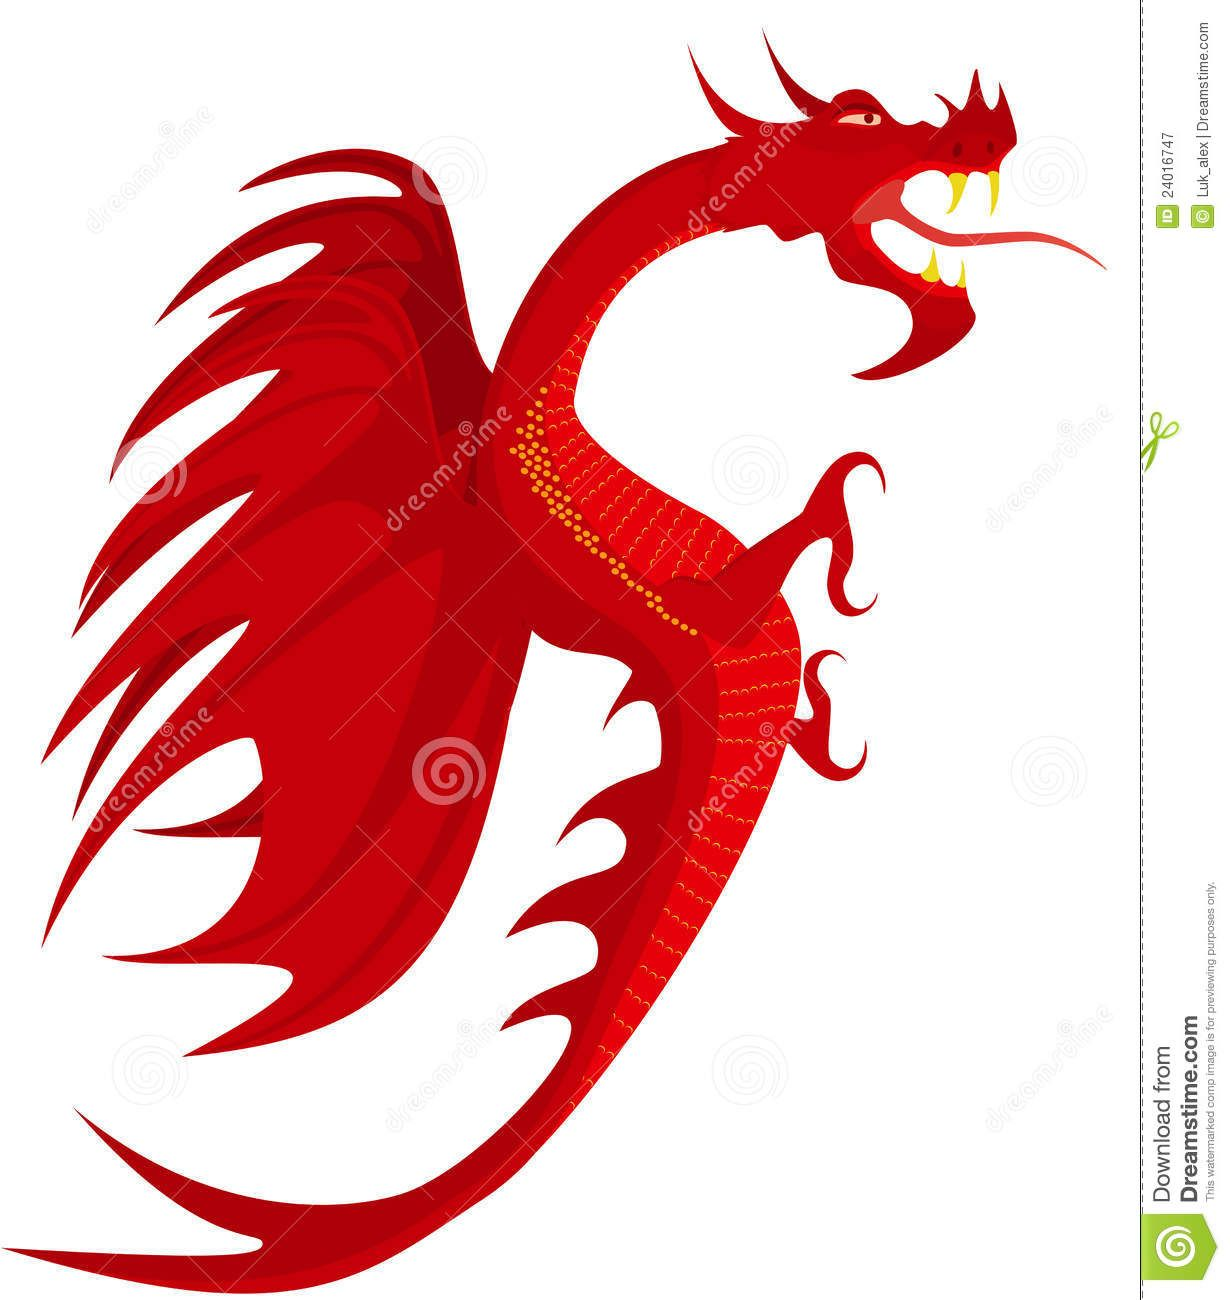 How to breed heraldic dragon - Heraldry Red Dragon Royalty Free Stock Photography Image 24016747